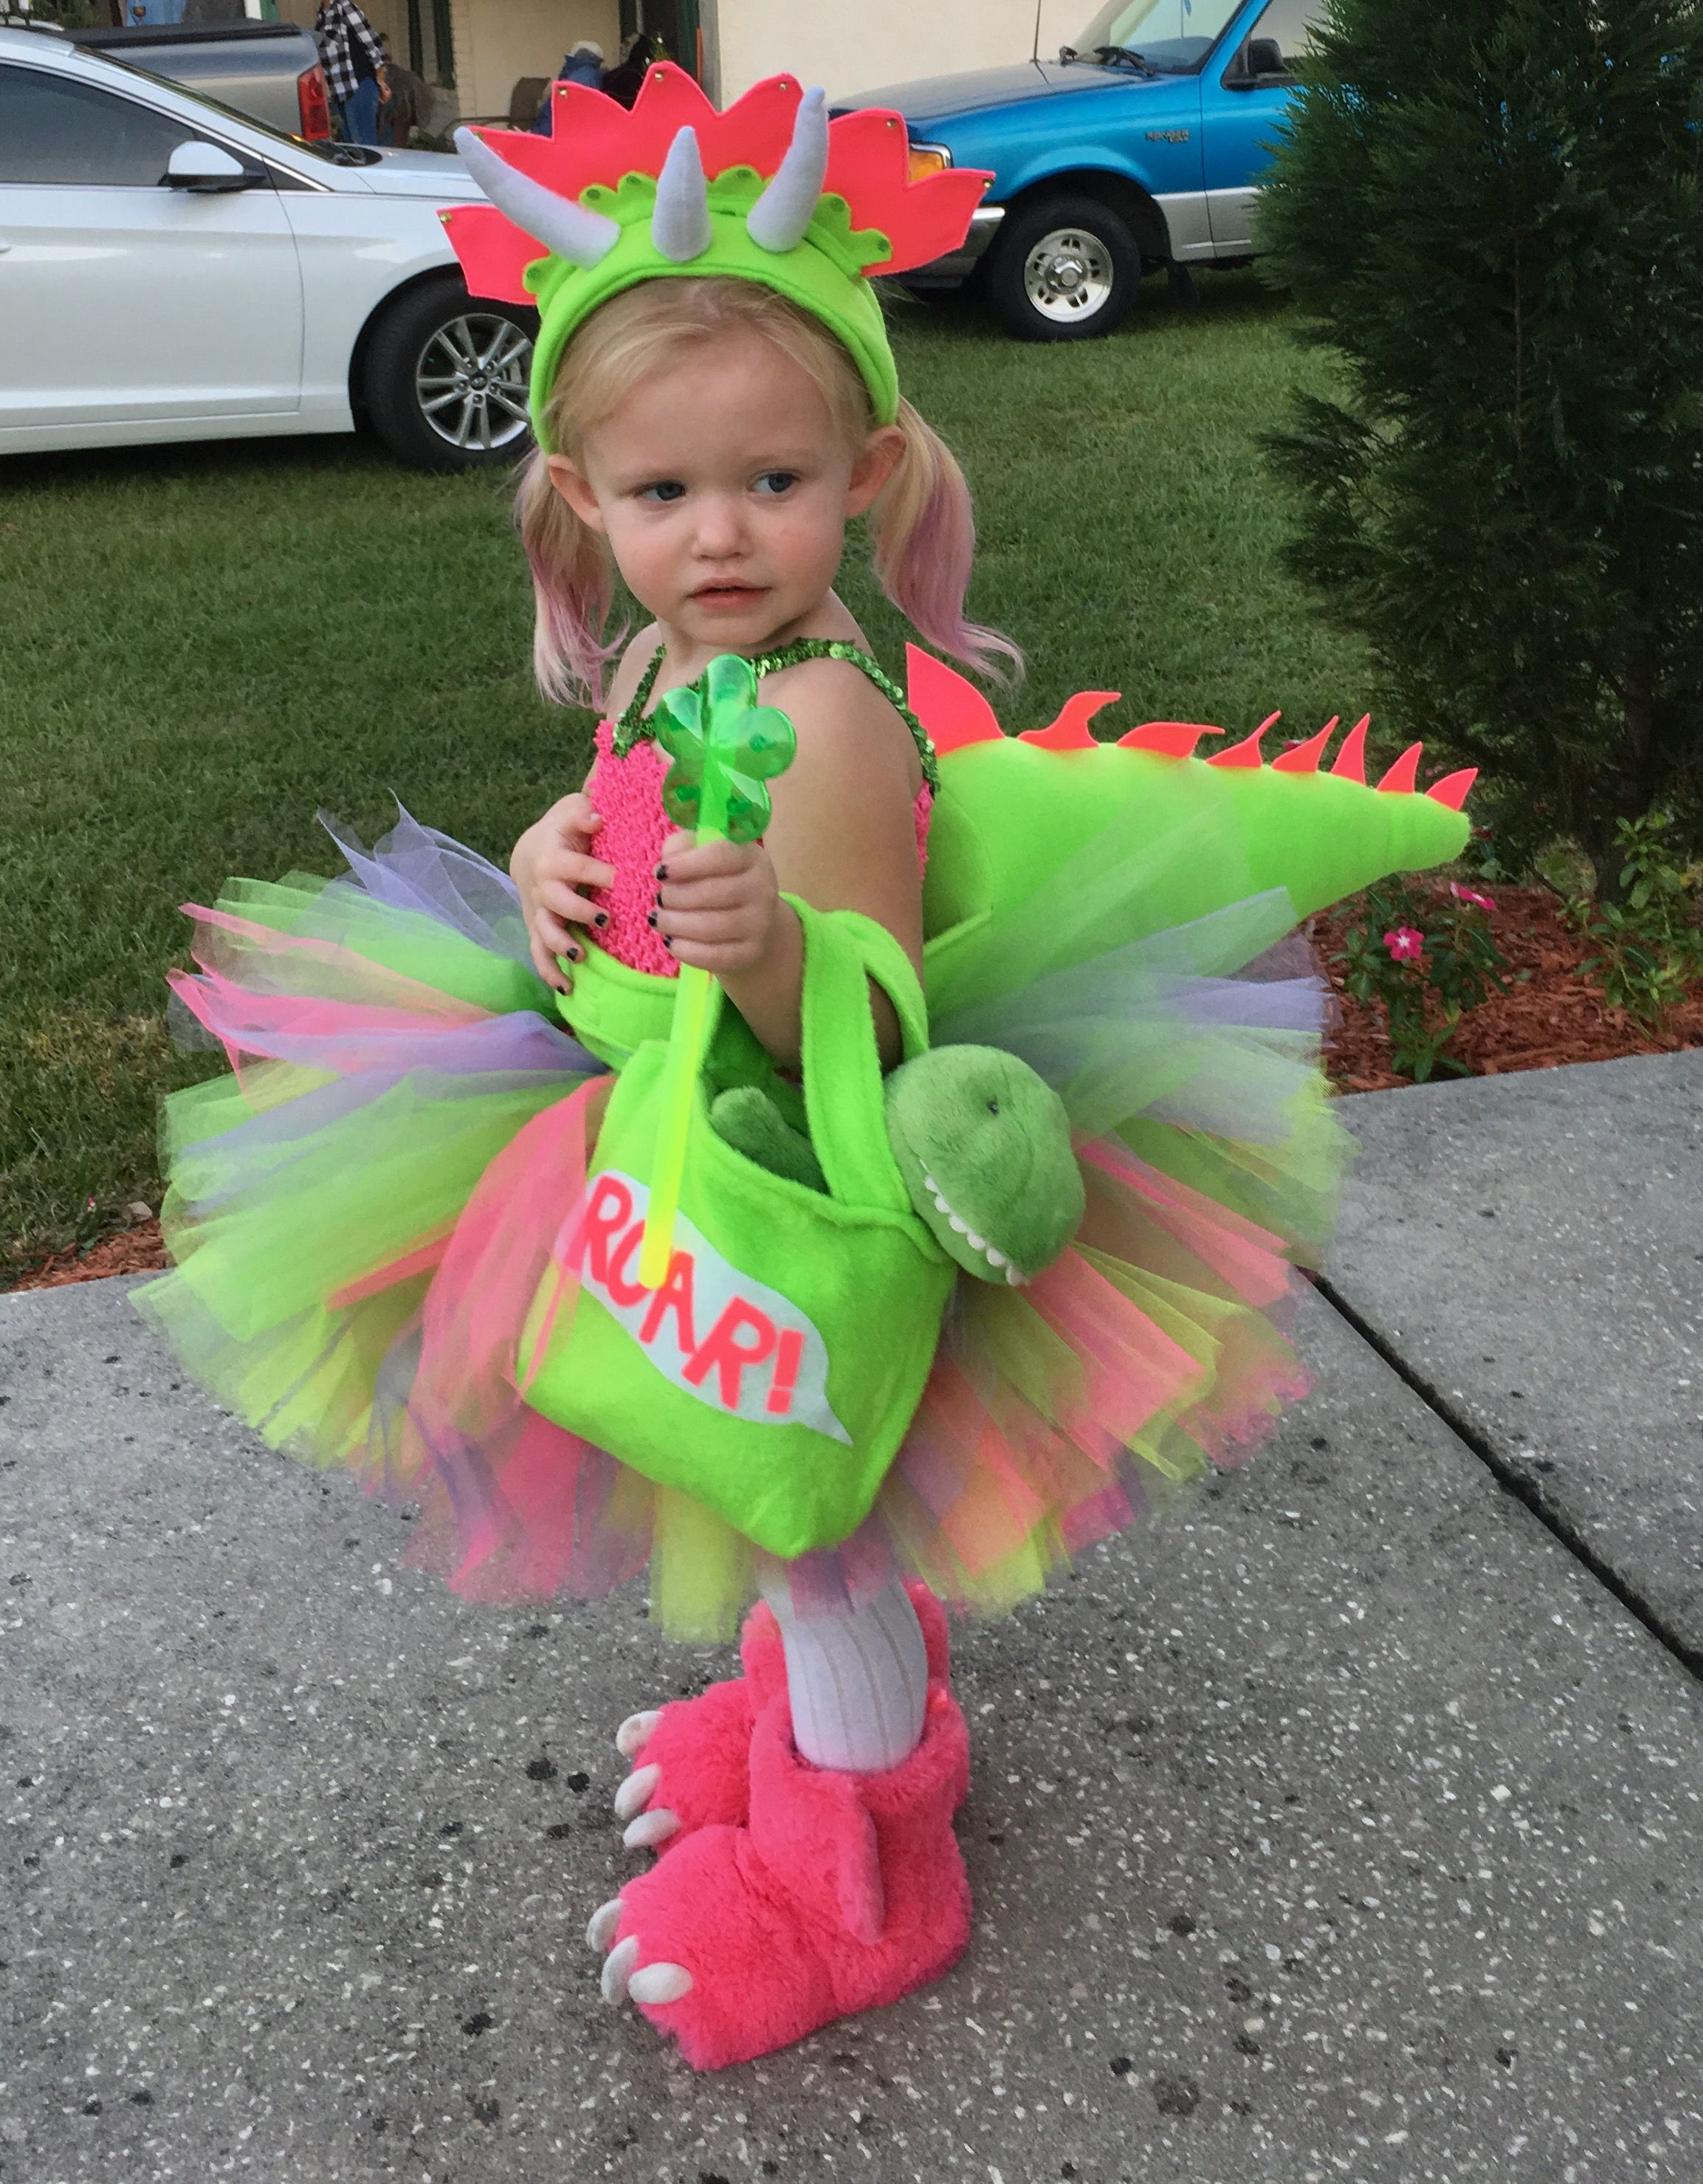 afb5c9463a80b Lily's triceratops dinosaur costume | Halloween for lily in 2019 ...